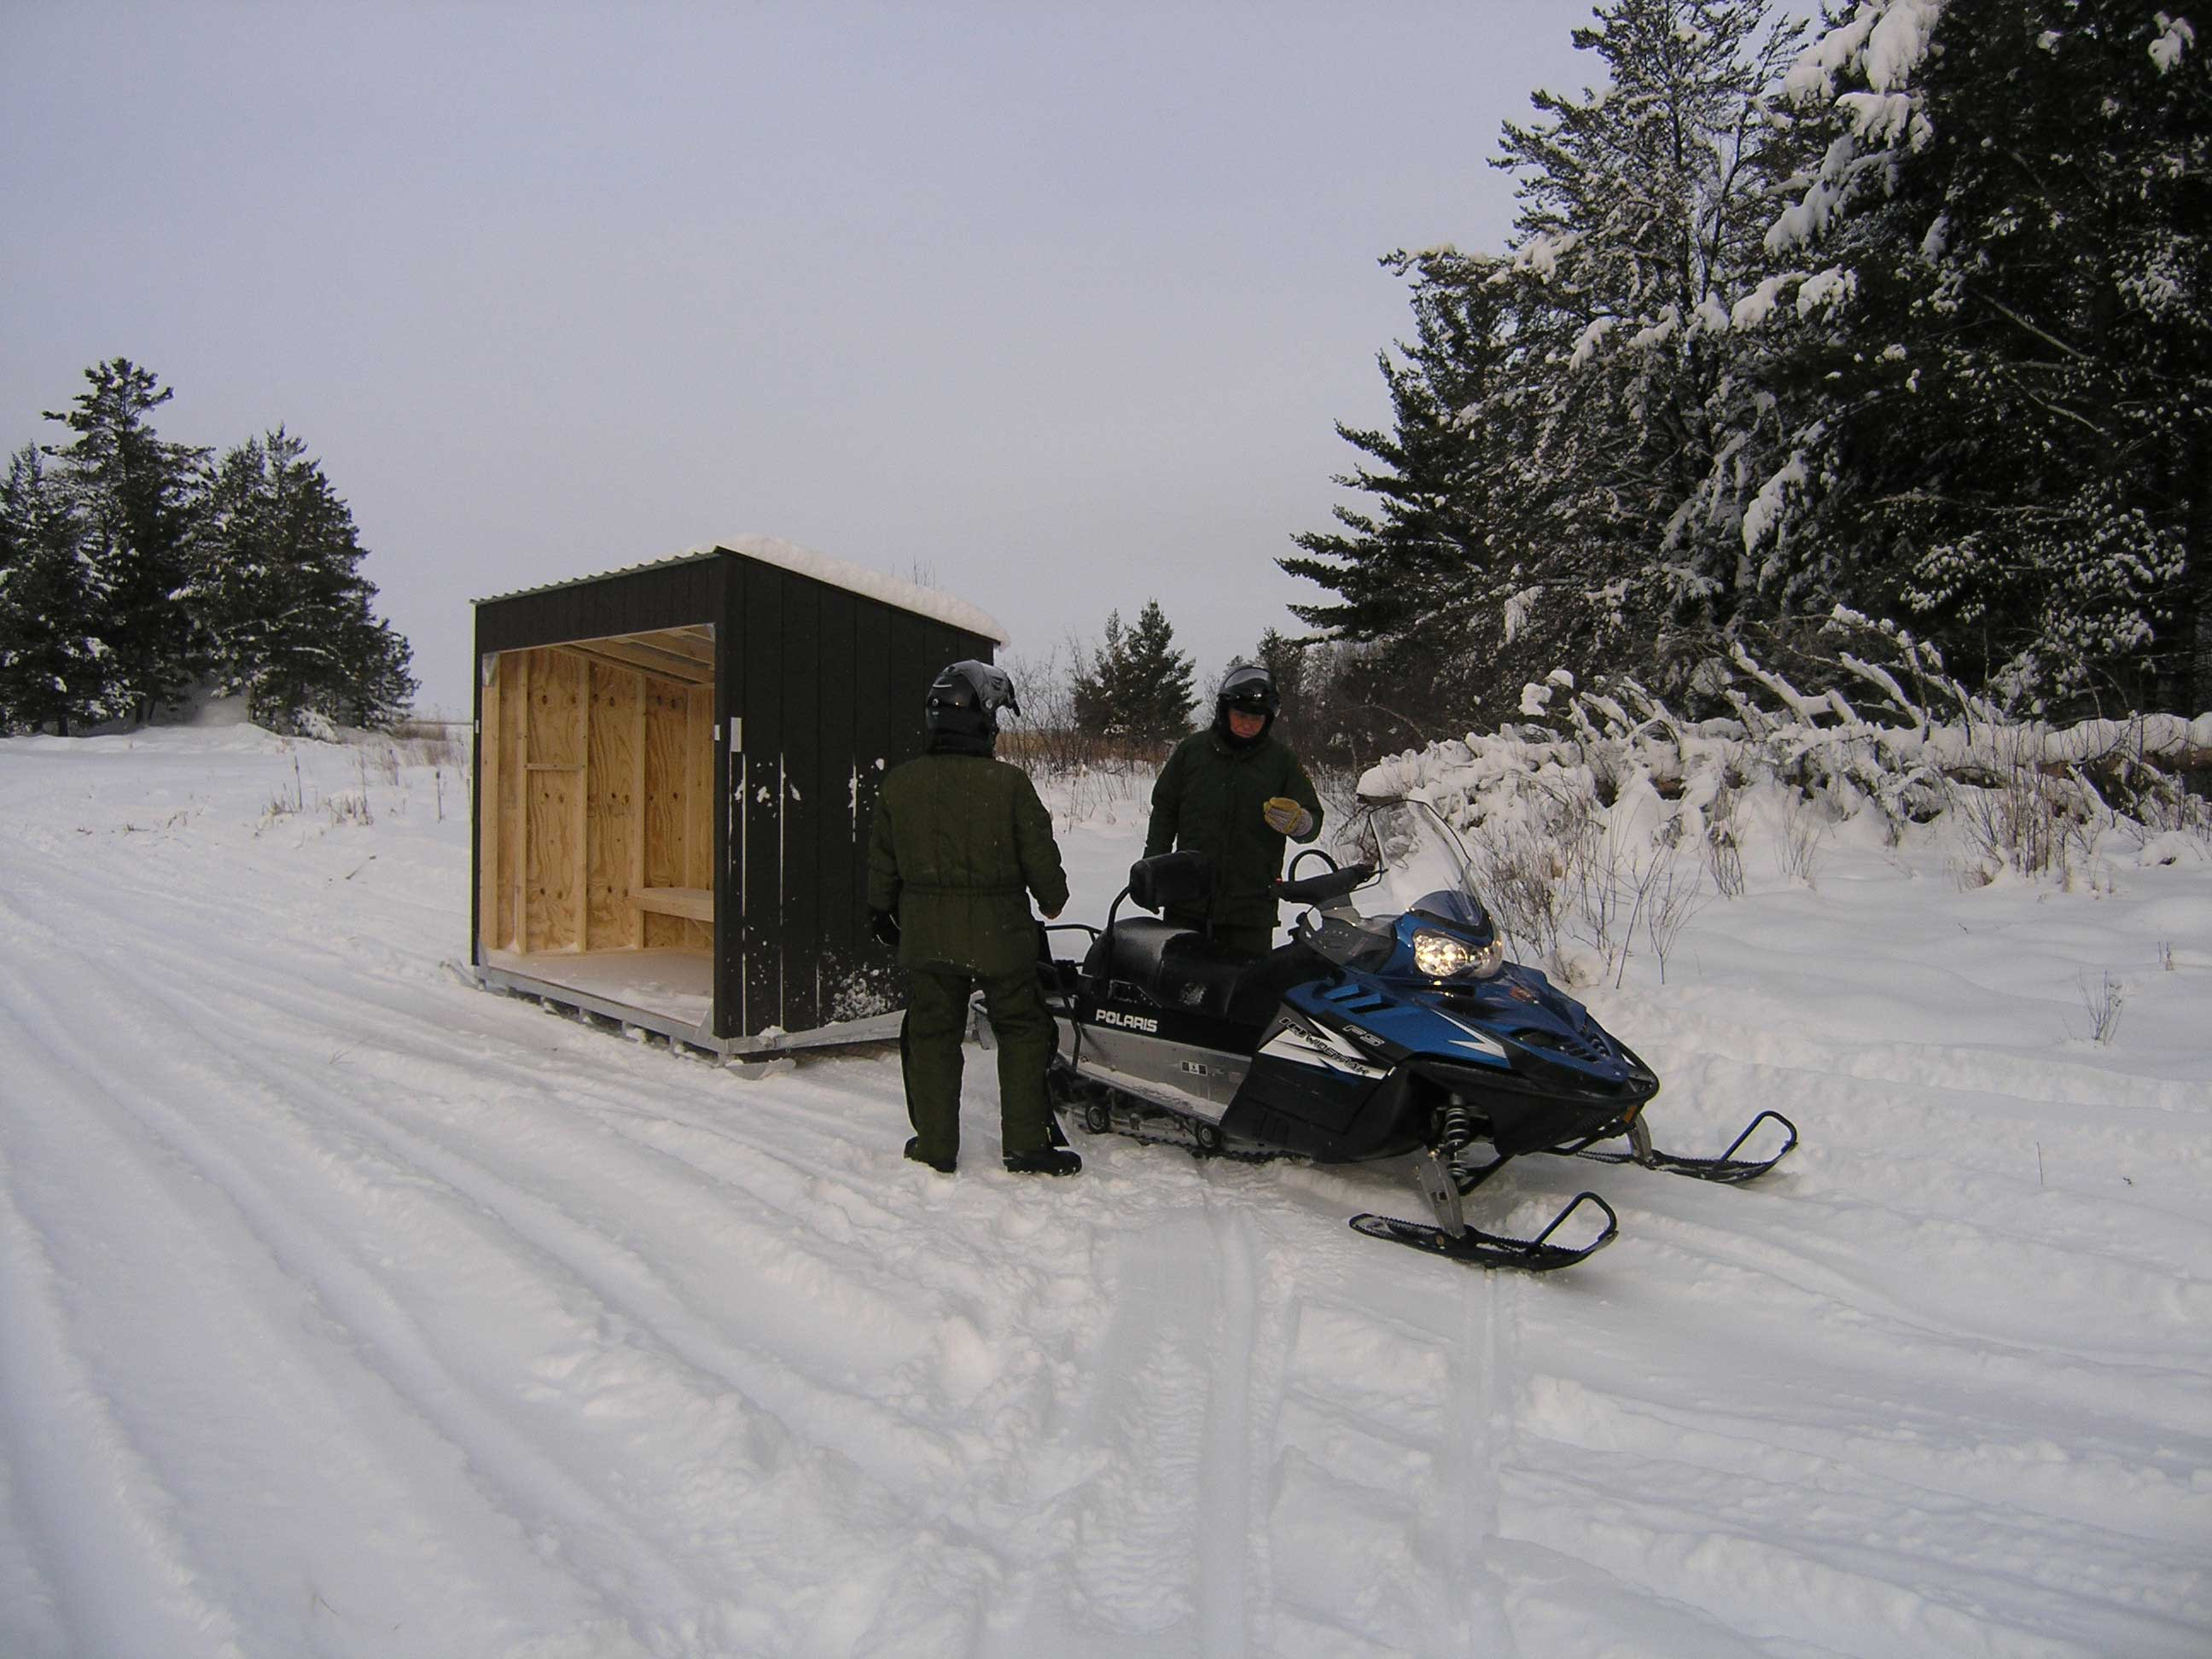 Rangers delivering a Shelter with Sled